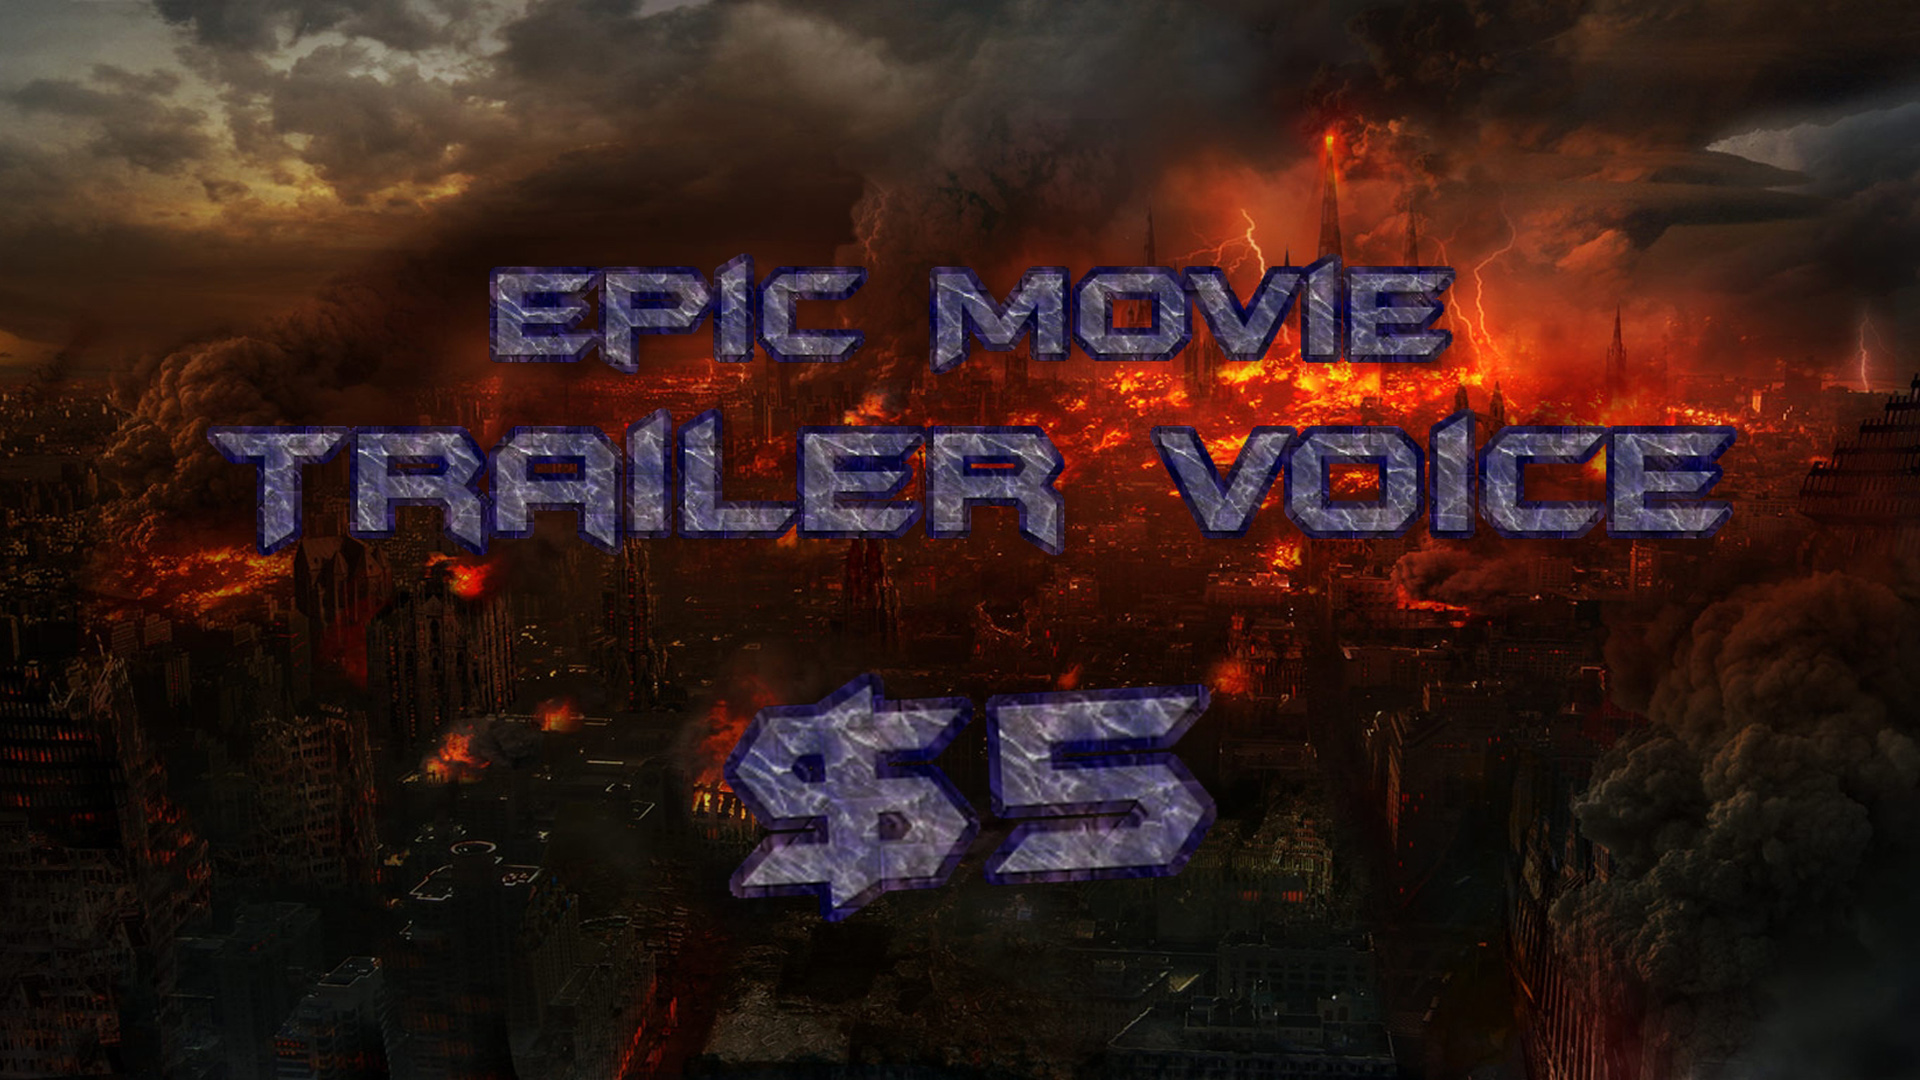 do a EPIC movie trailer style voiceover or narration